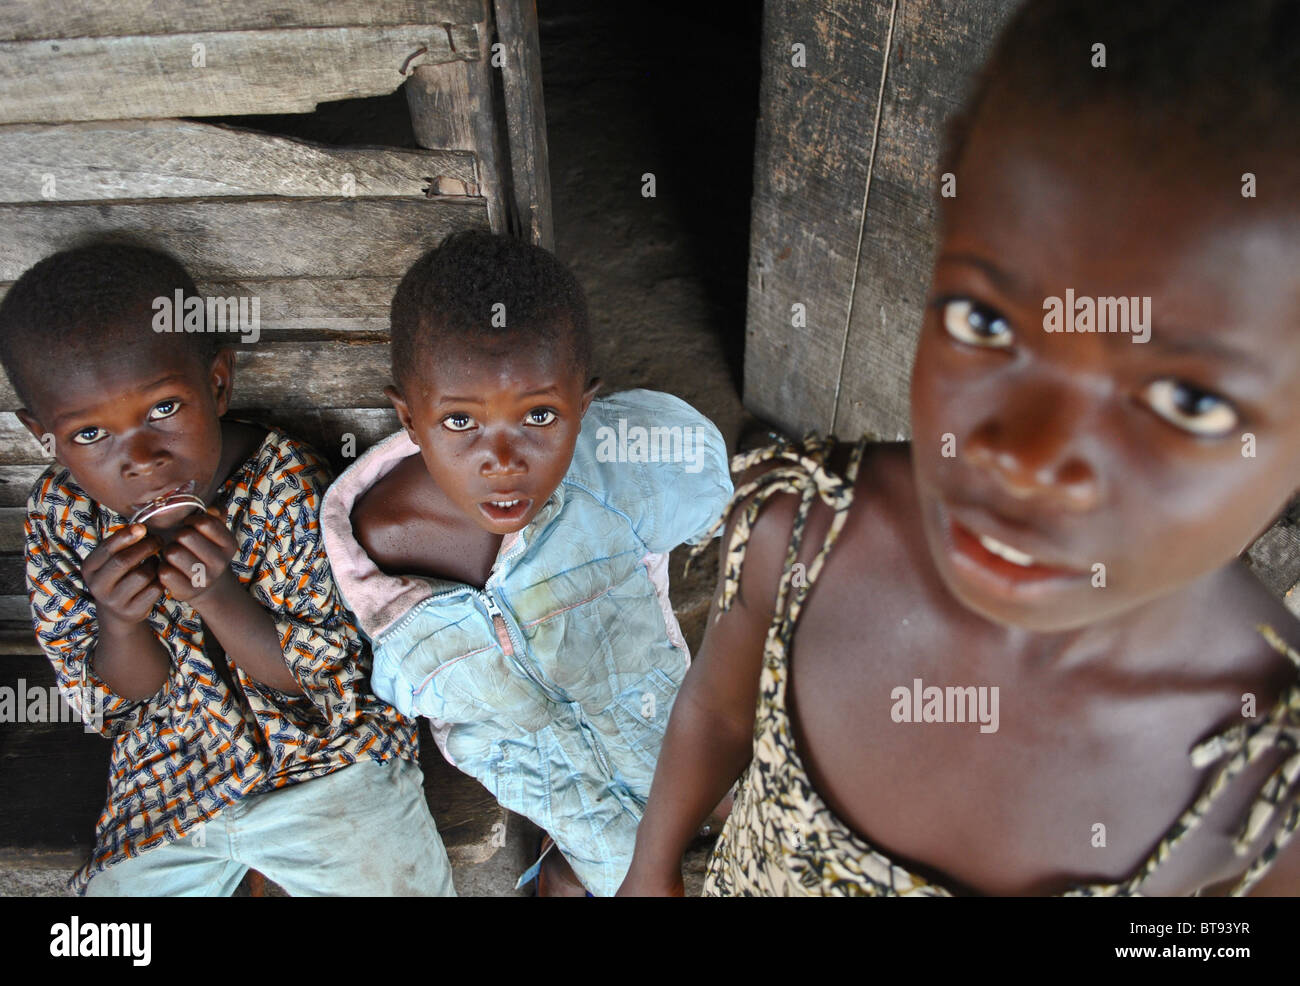 Scared Liberian refugee children in Tabou Transit Camp, West Africa - Stock Image